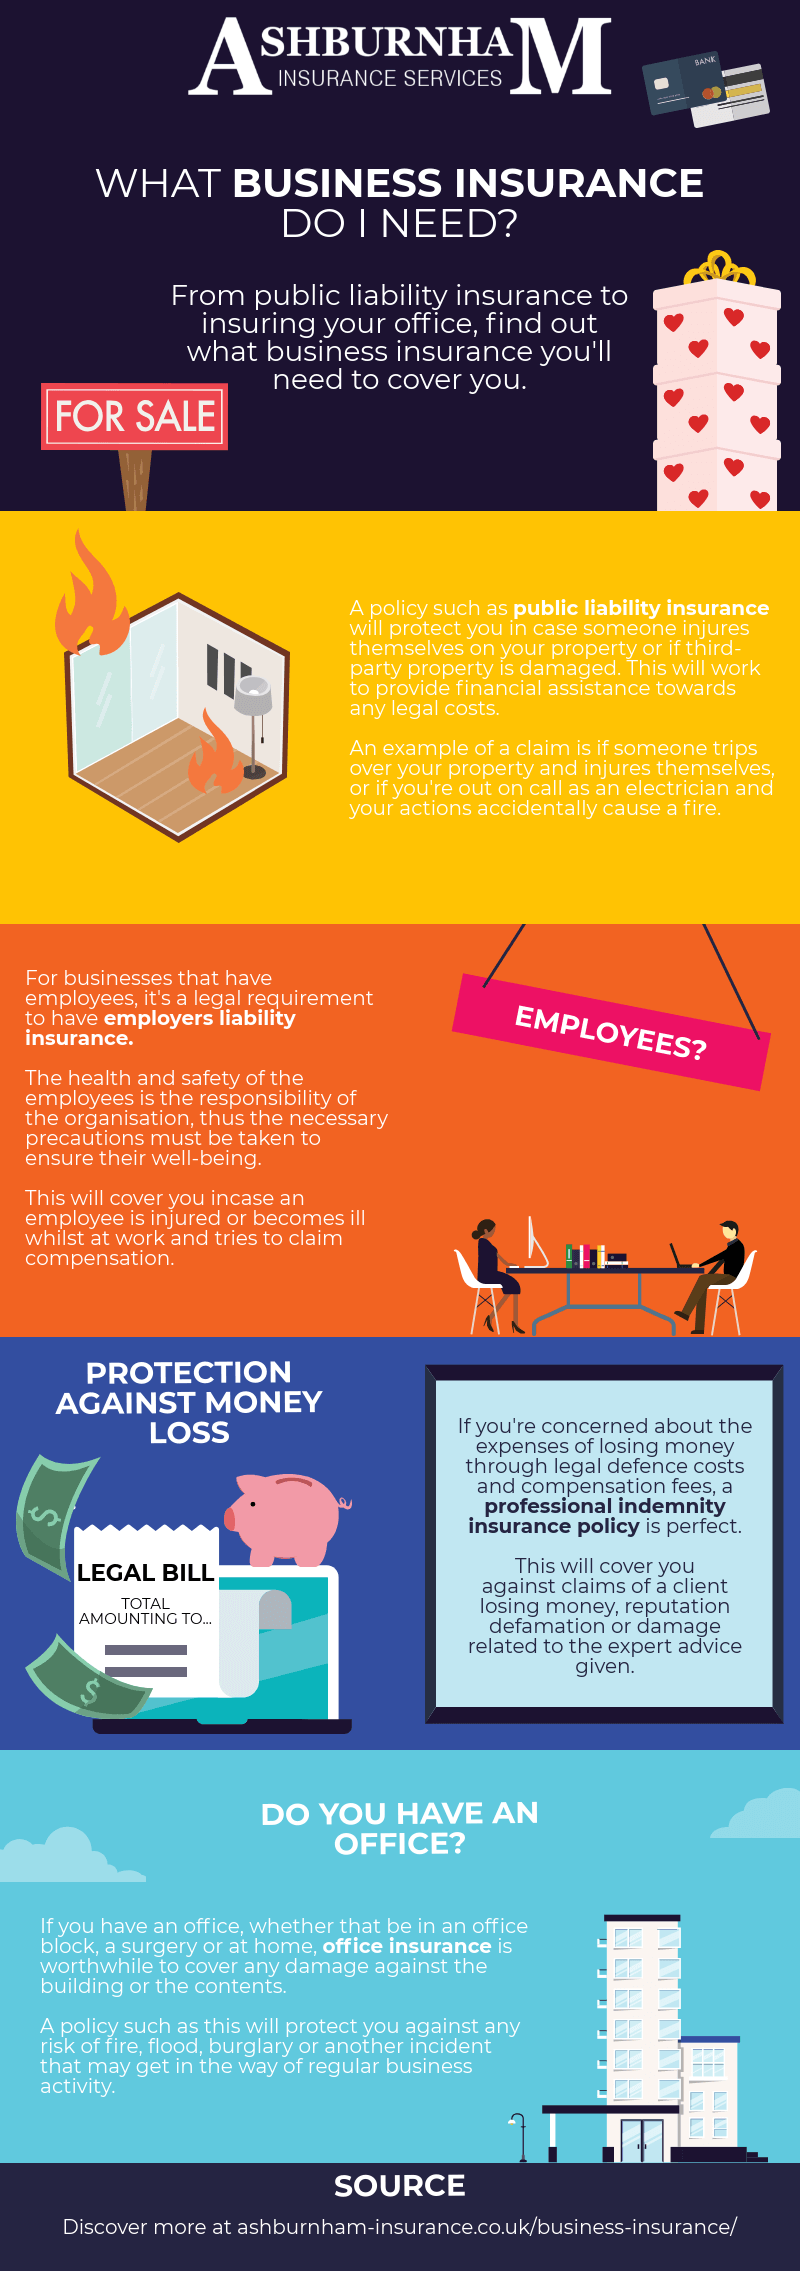 What Business Insurance Do I Need Infographic